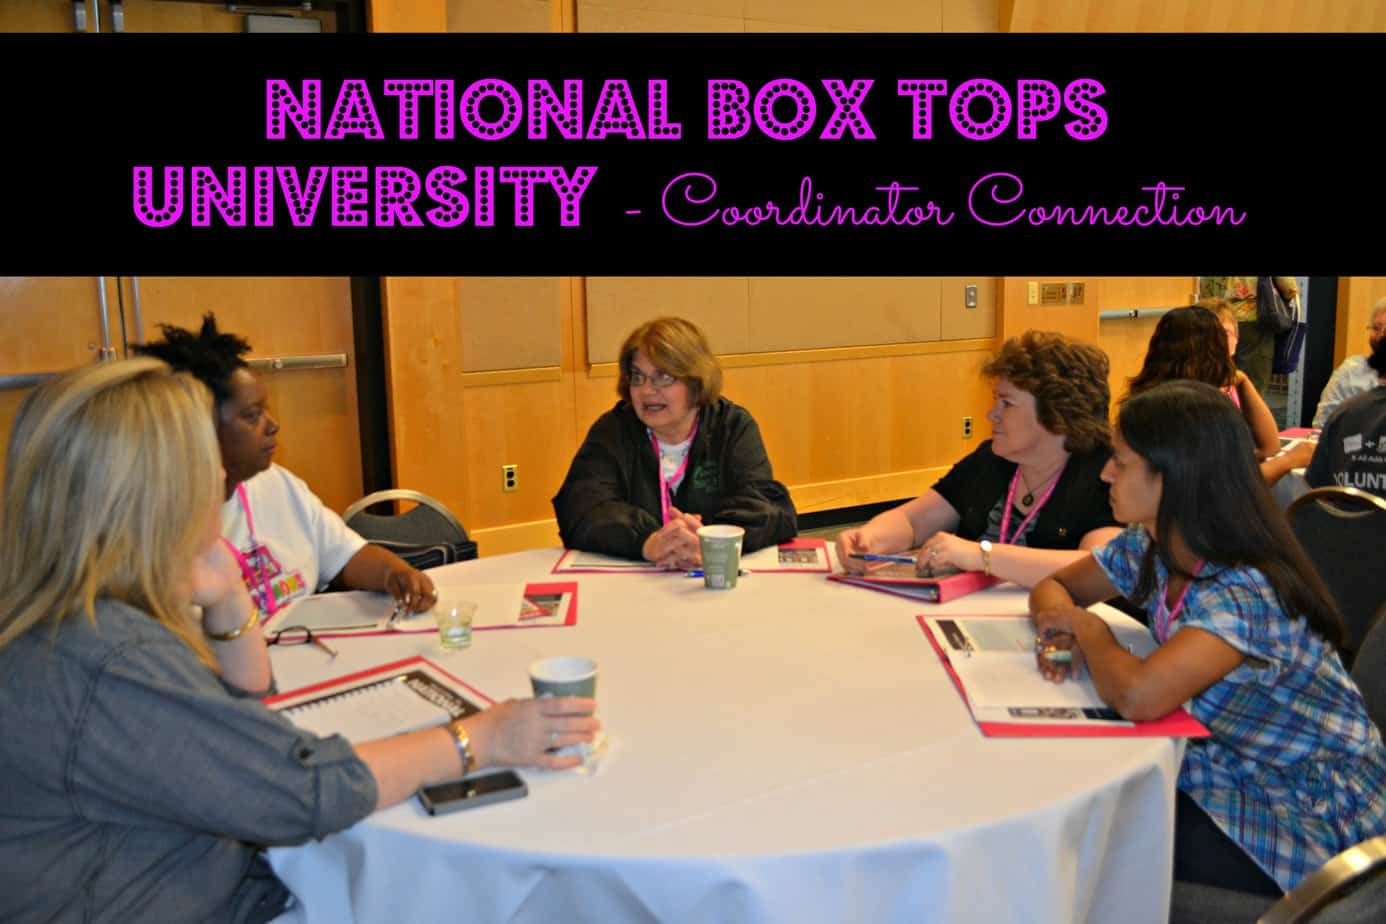 National Box Tops University Coordinator Connection